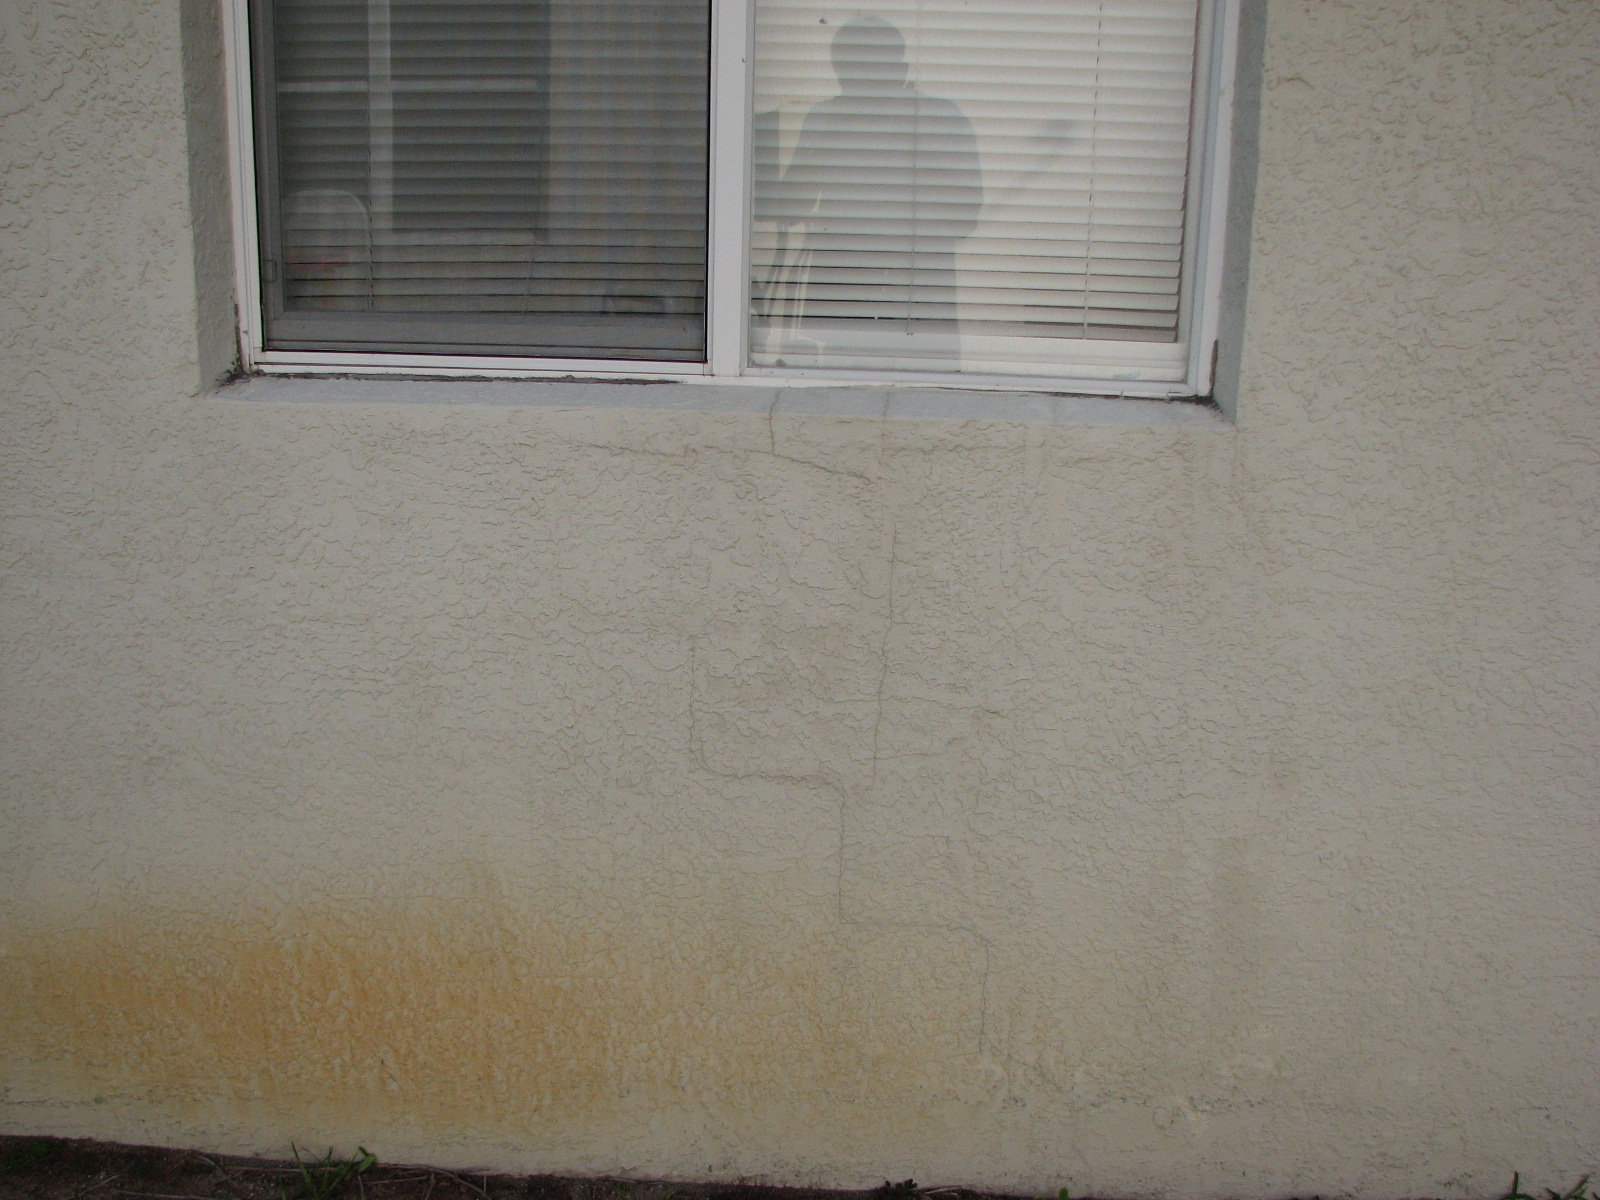 Exterior Painting Melbourne Florida Stucco Cracks Dingy Soffitts Iron Stains